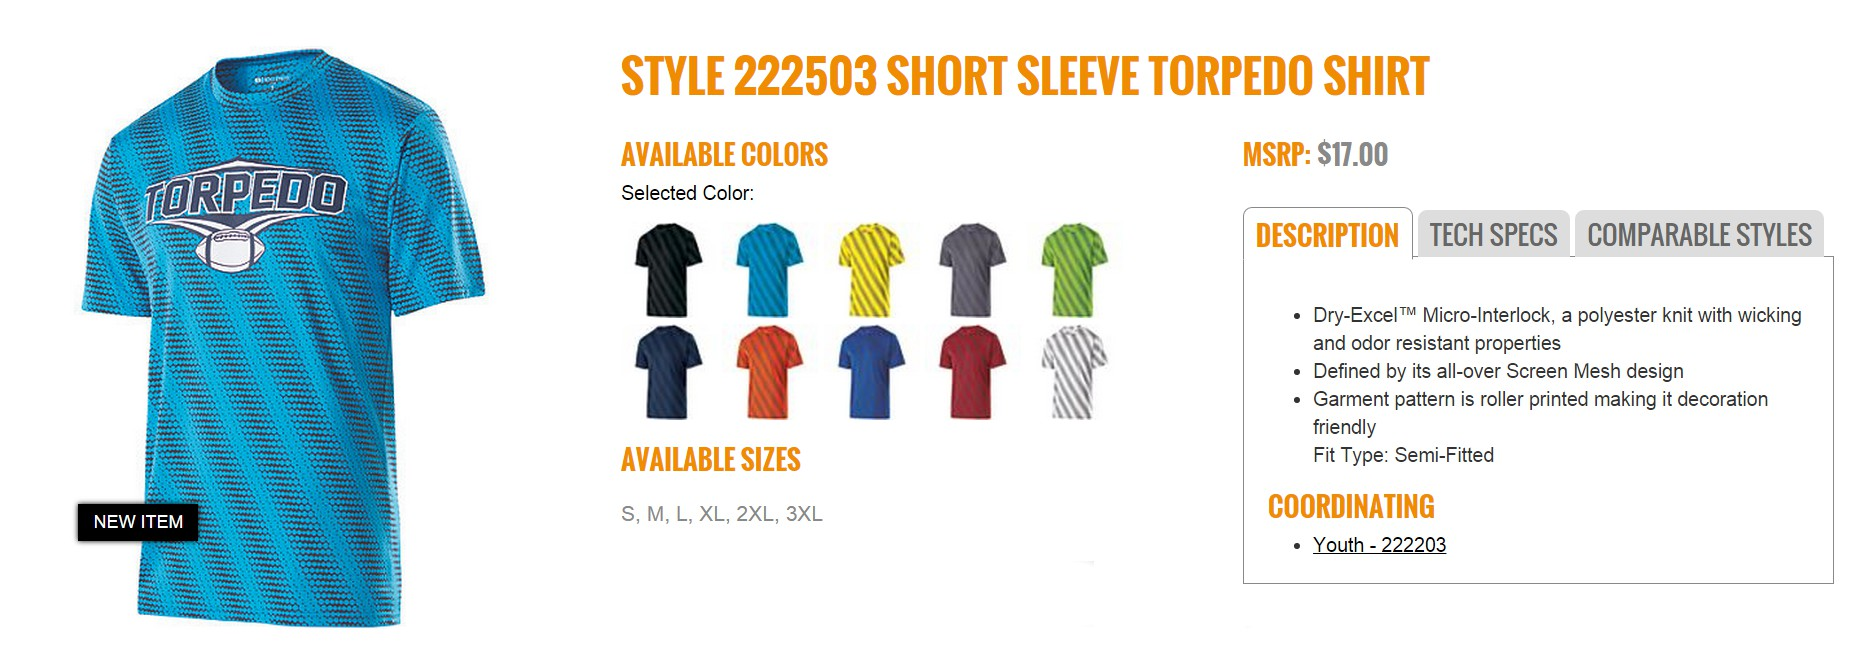 Group Fundraising Store Apparel Fundraising Holloway  Short Sleeve Torpedo Shirt 222503